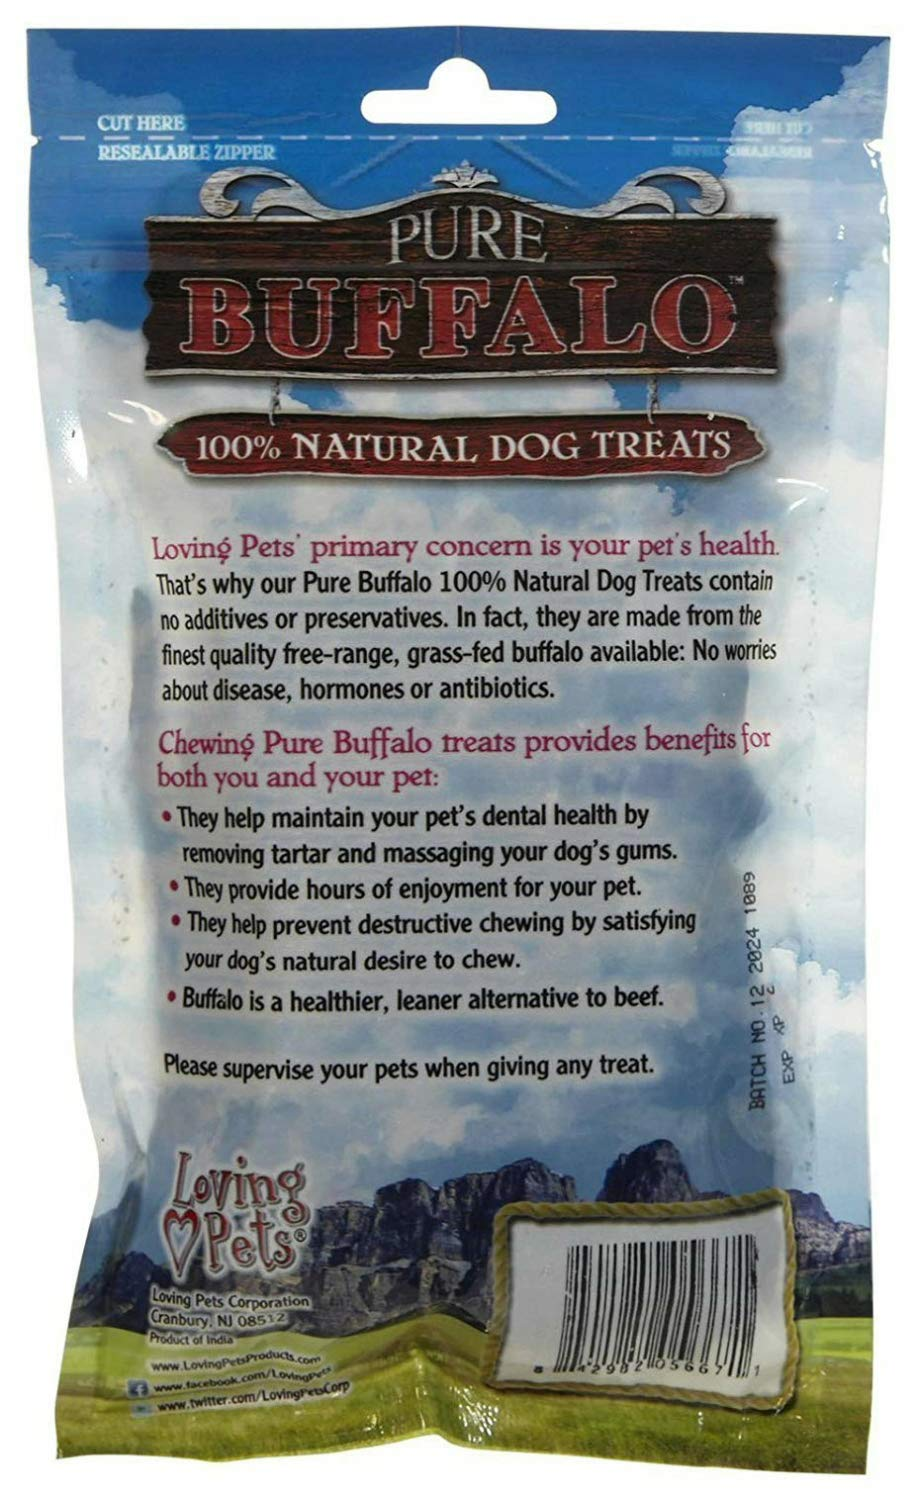 Loving Pets Pure Buffalo Meat Jerky Strips Dog Chews, 3.5 Ounce, 24 Pack by Loving Pets (Image #4)